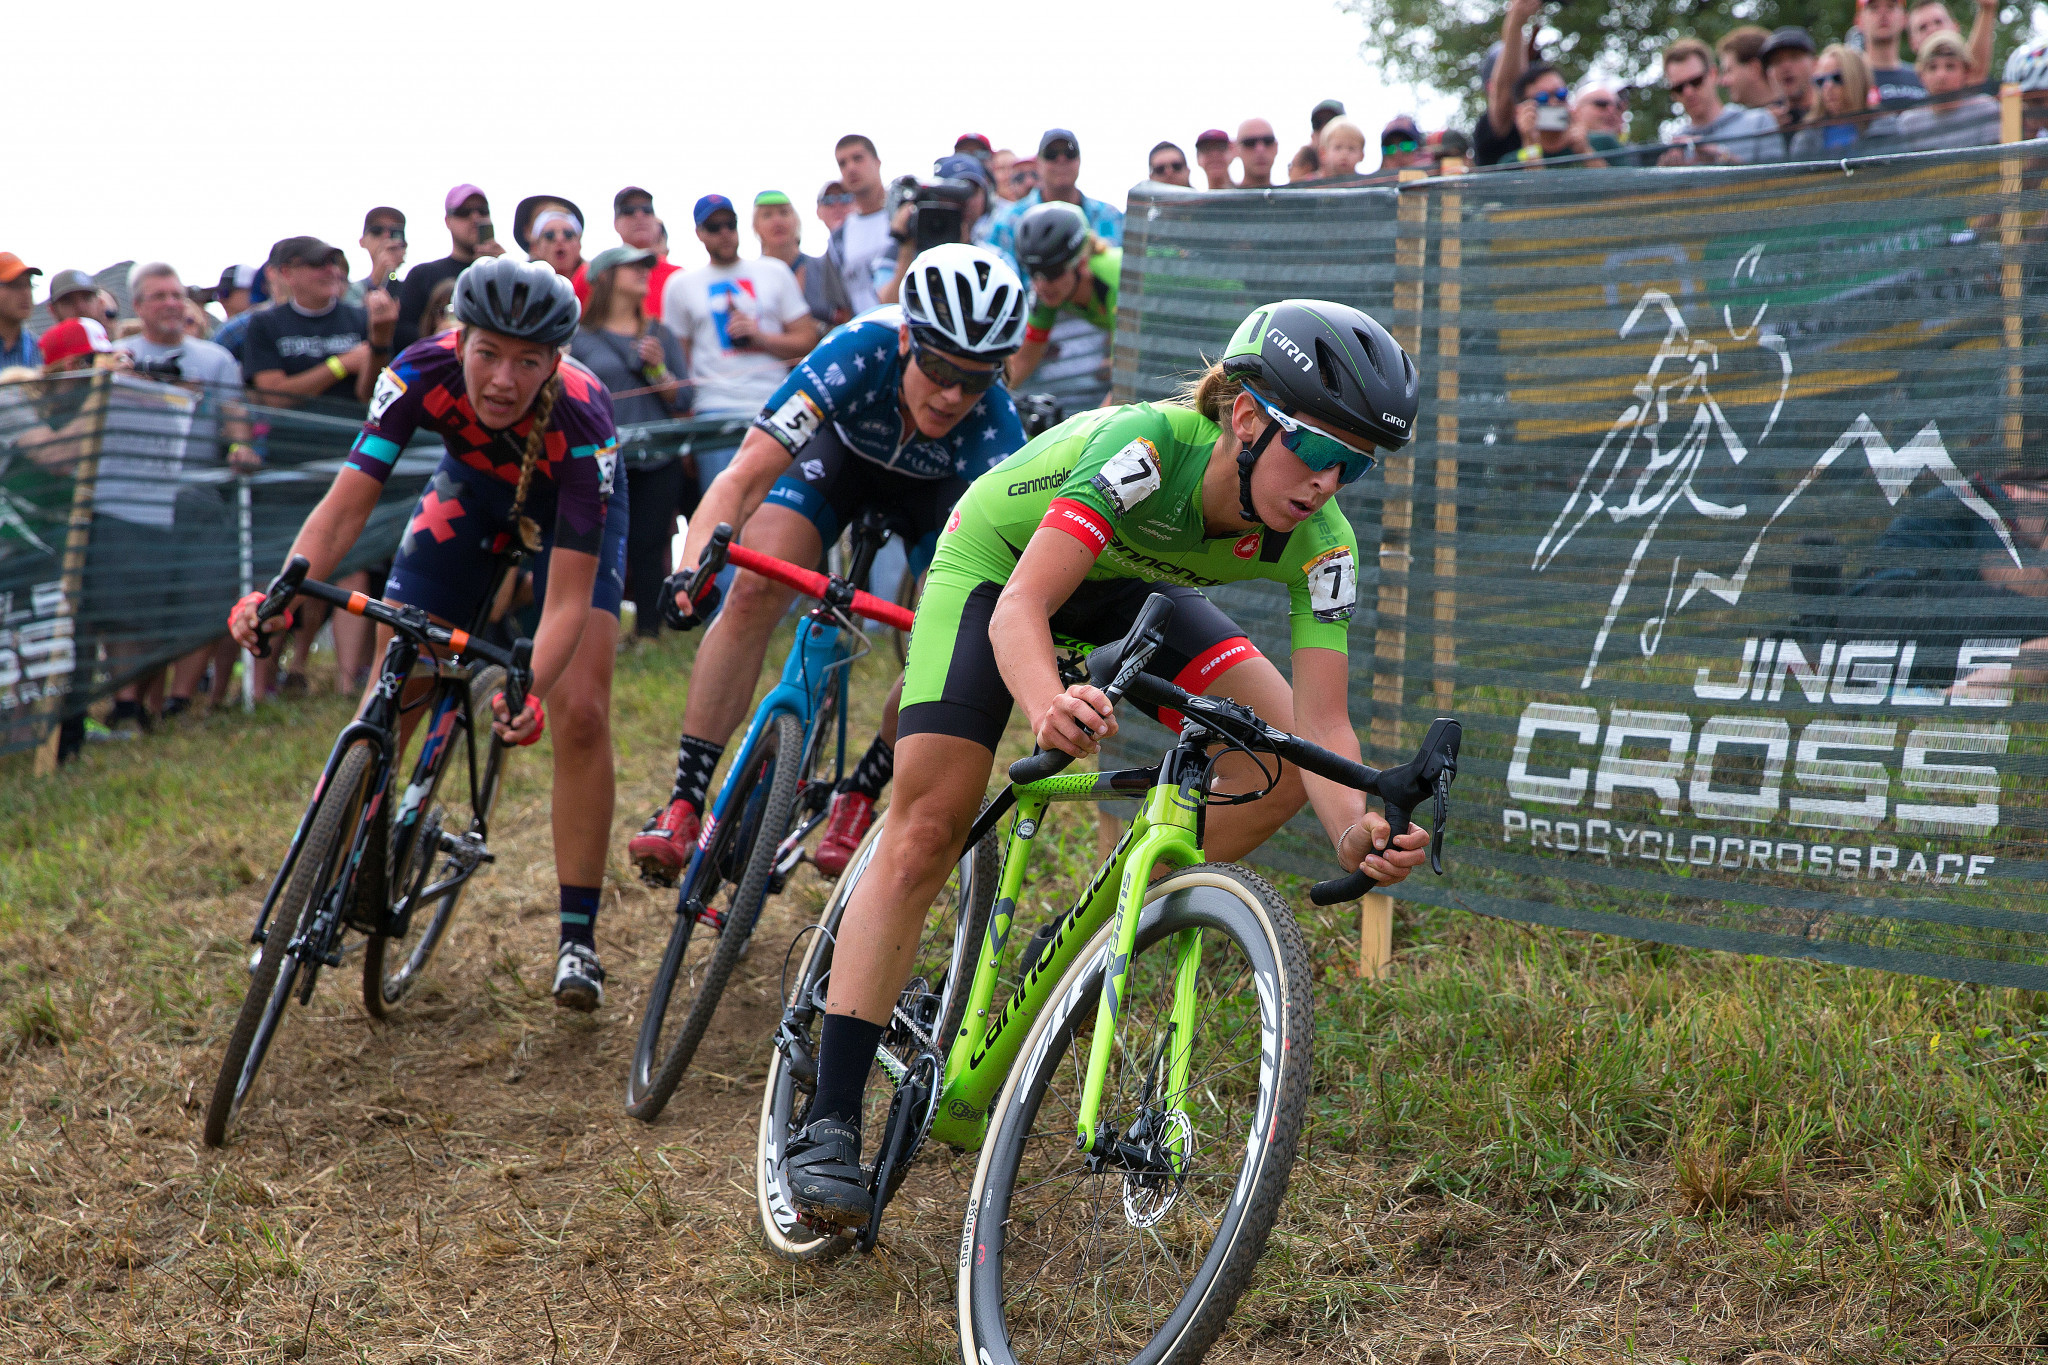 Rochette becomes first Canadian to win Pan American Cyclo-cross Championships